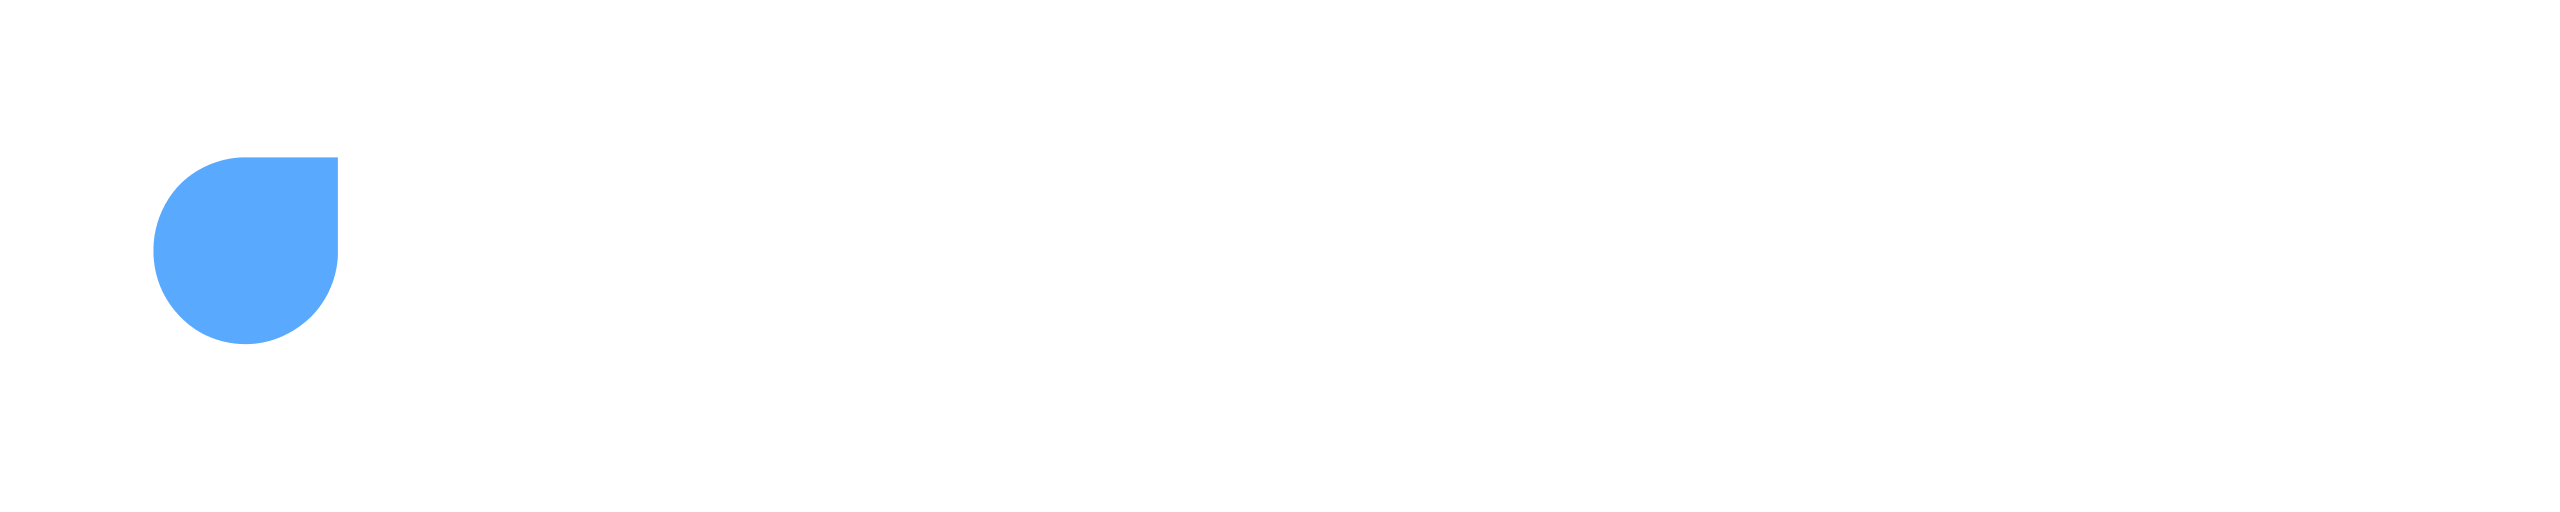 software testing firm